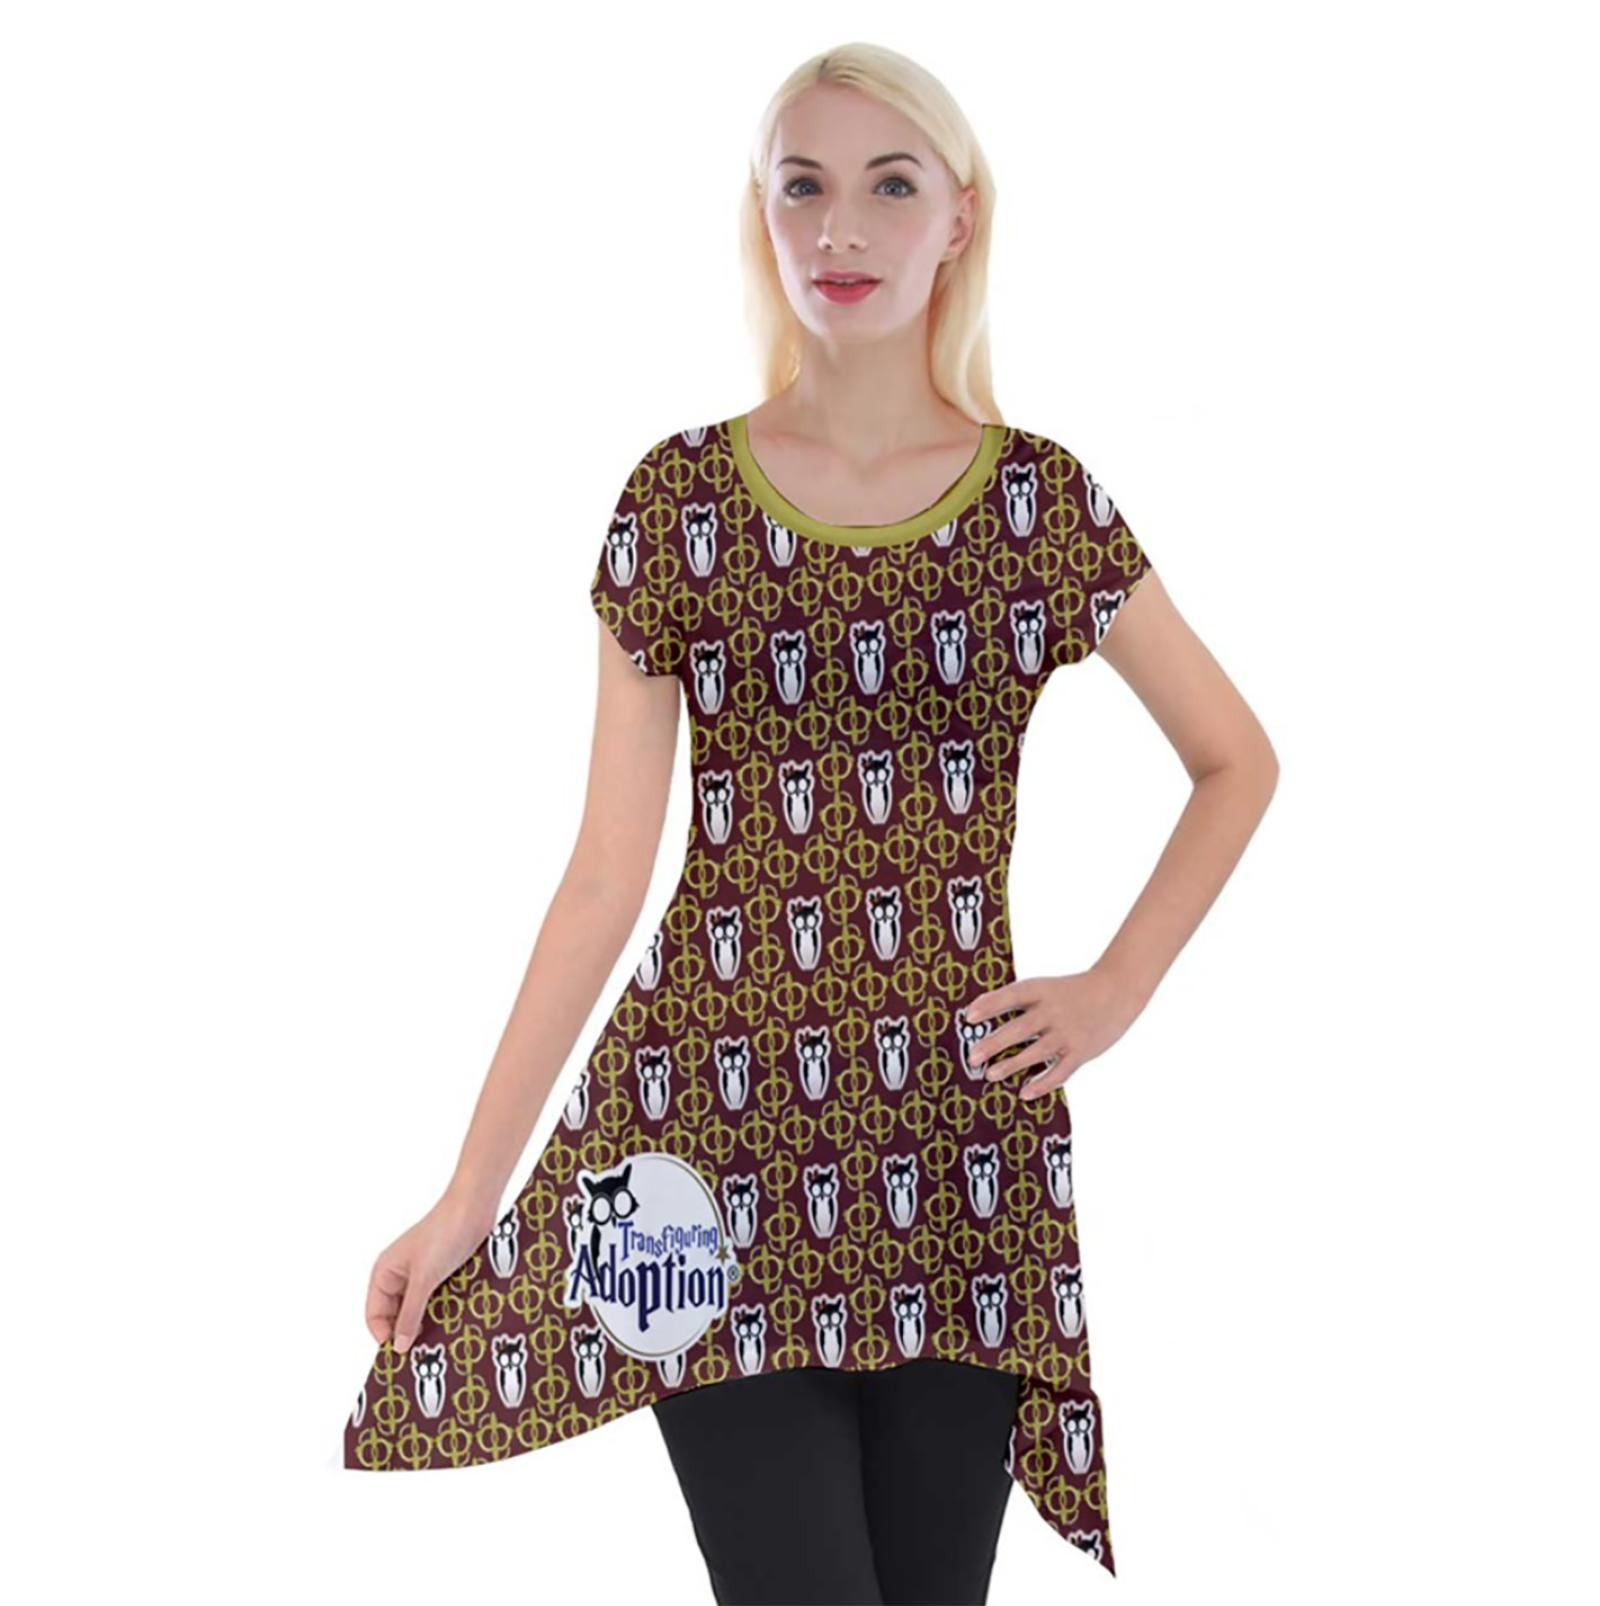 Red and Gold Pattern Women's Short Sleeve Side Drop Tunic - Inspired by Gryffindor